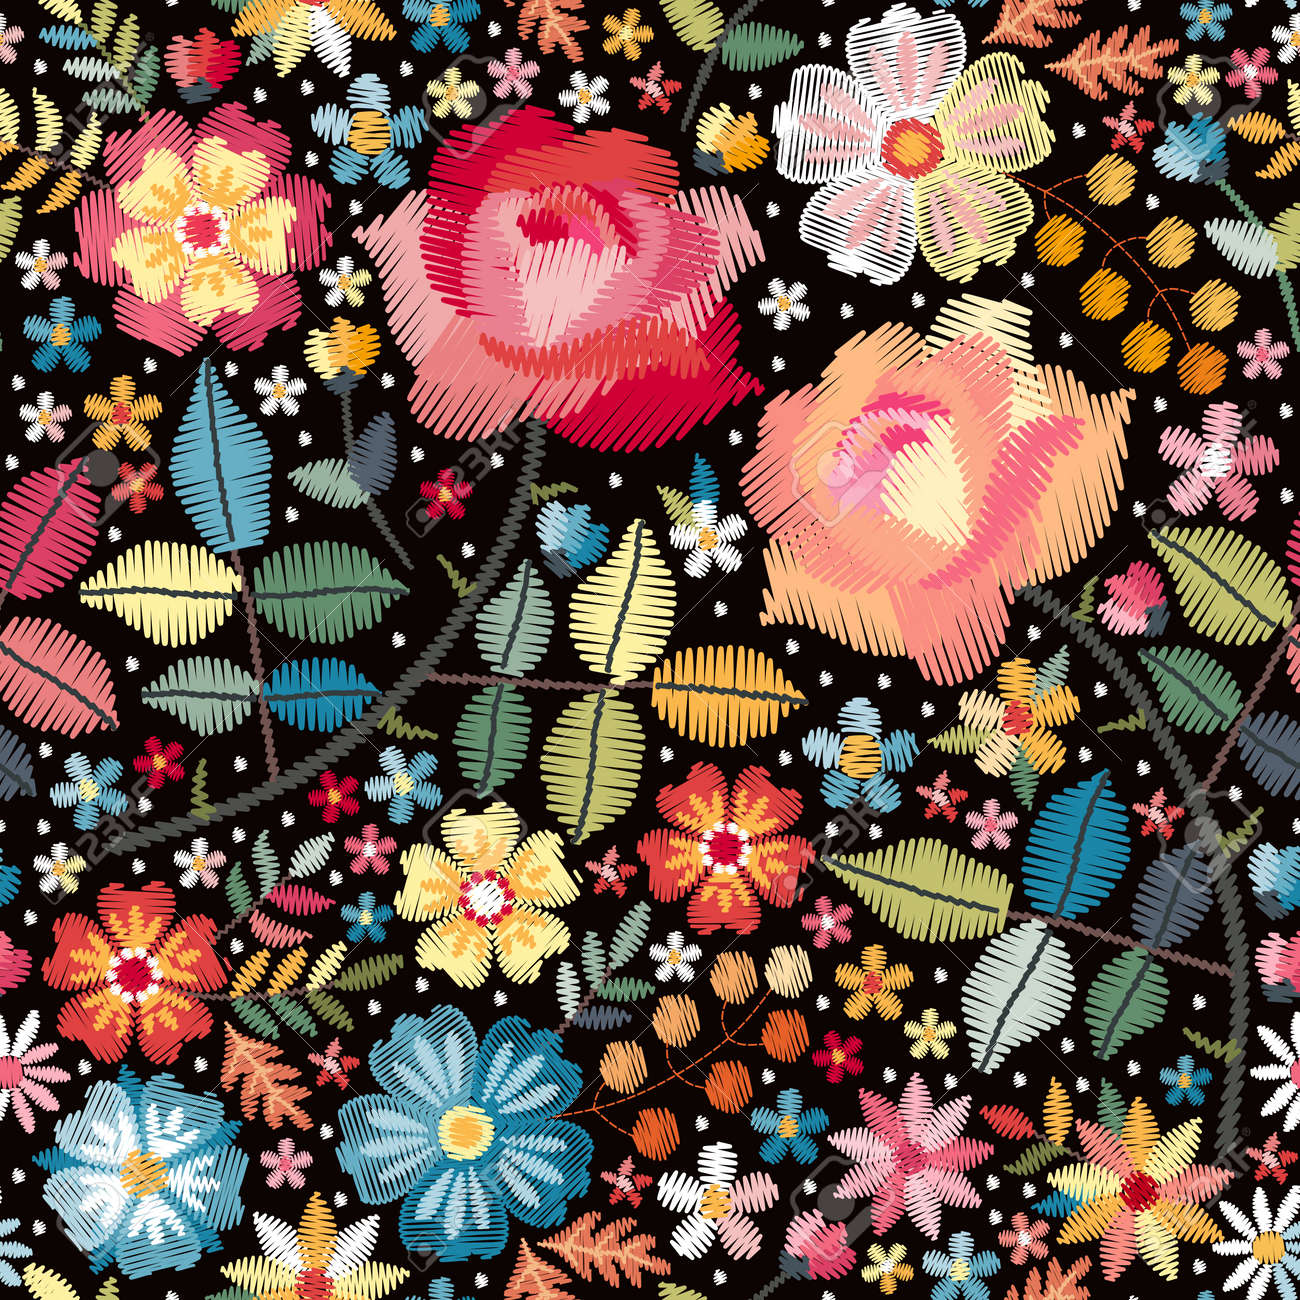 Bright colorful seamless pattern with embroidery flowers, leaves and berries on black background. Vector design. - 173408005